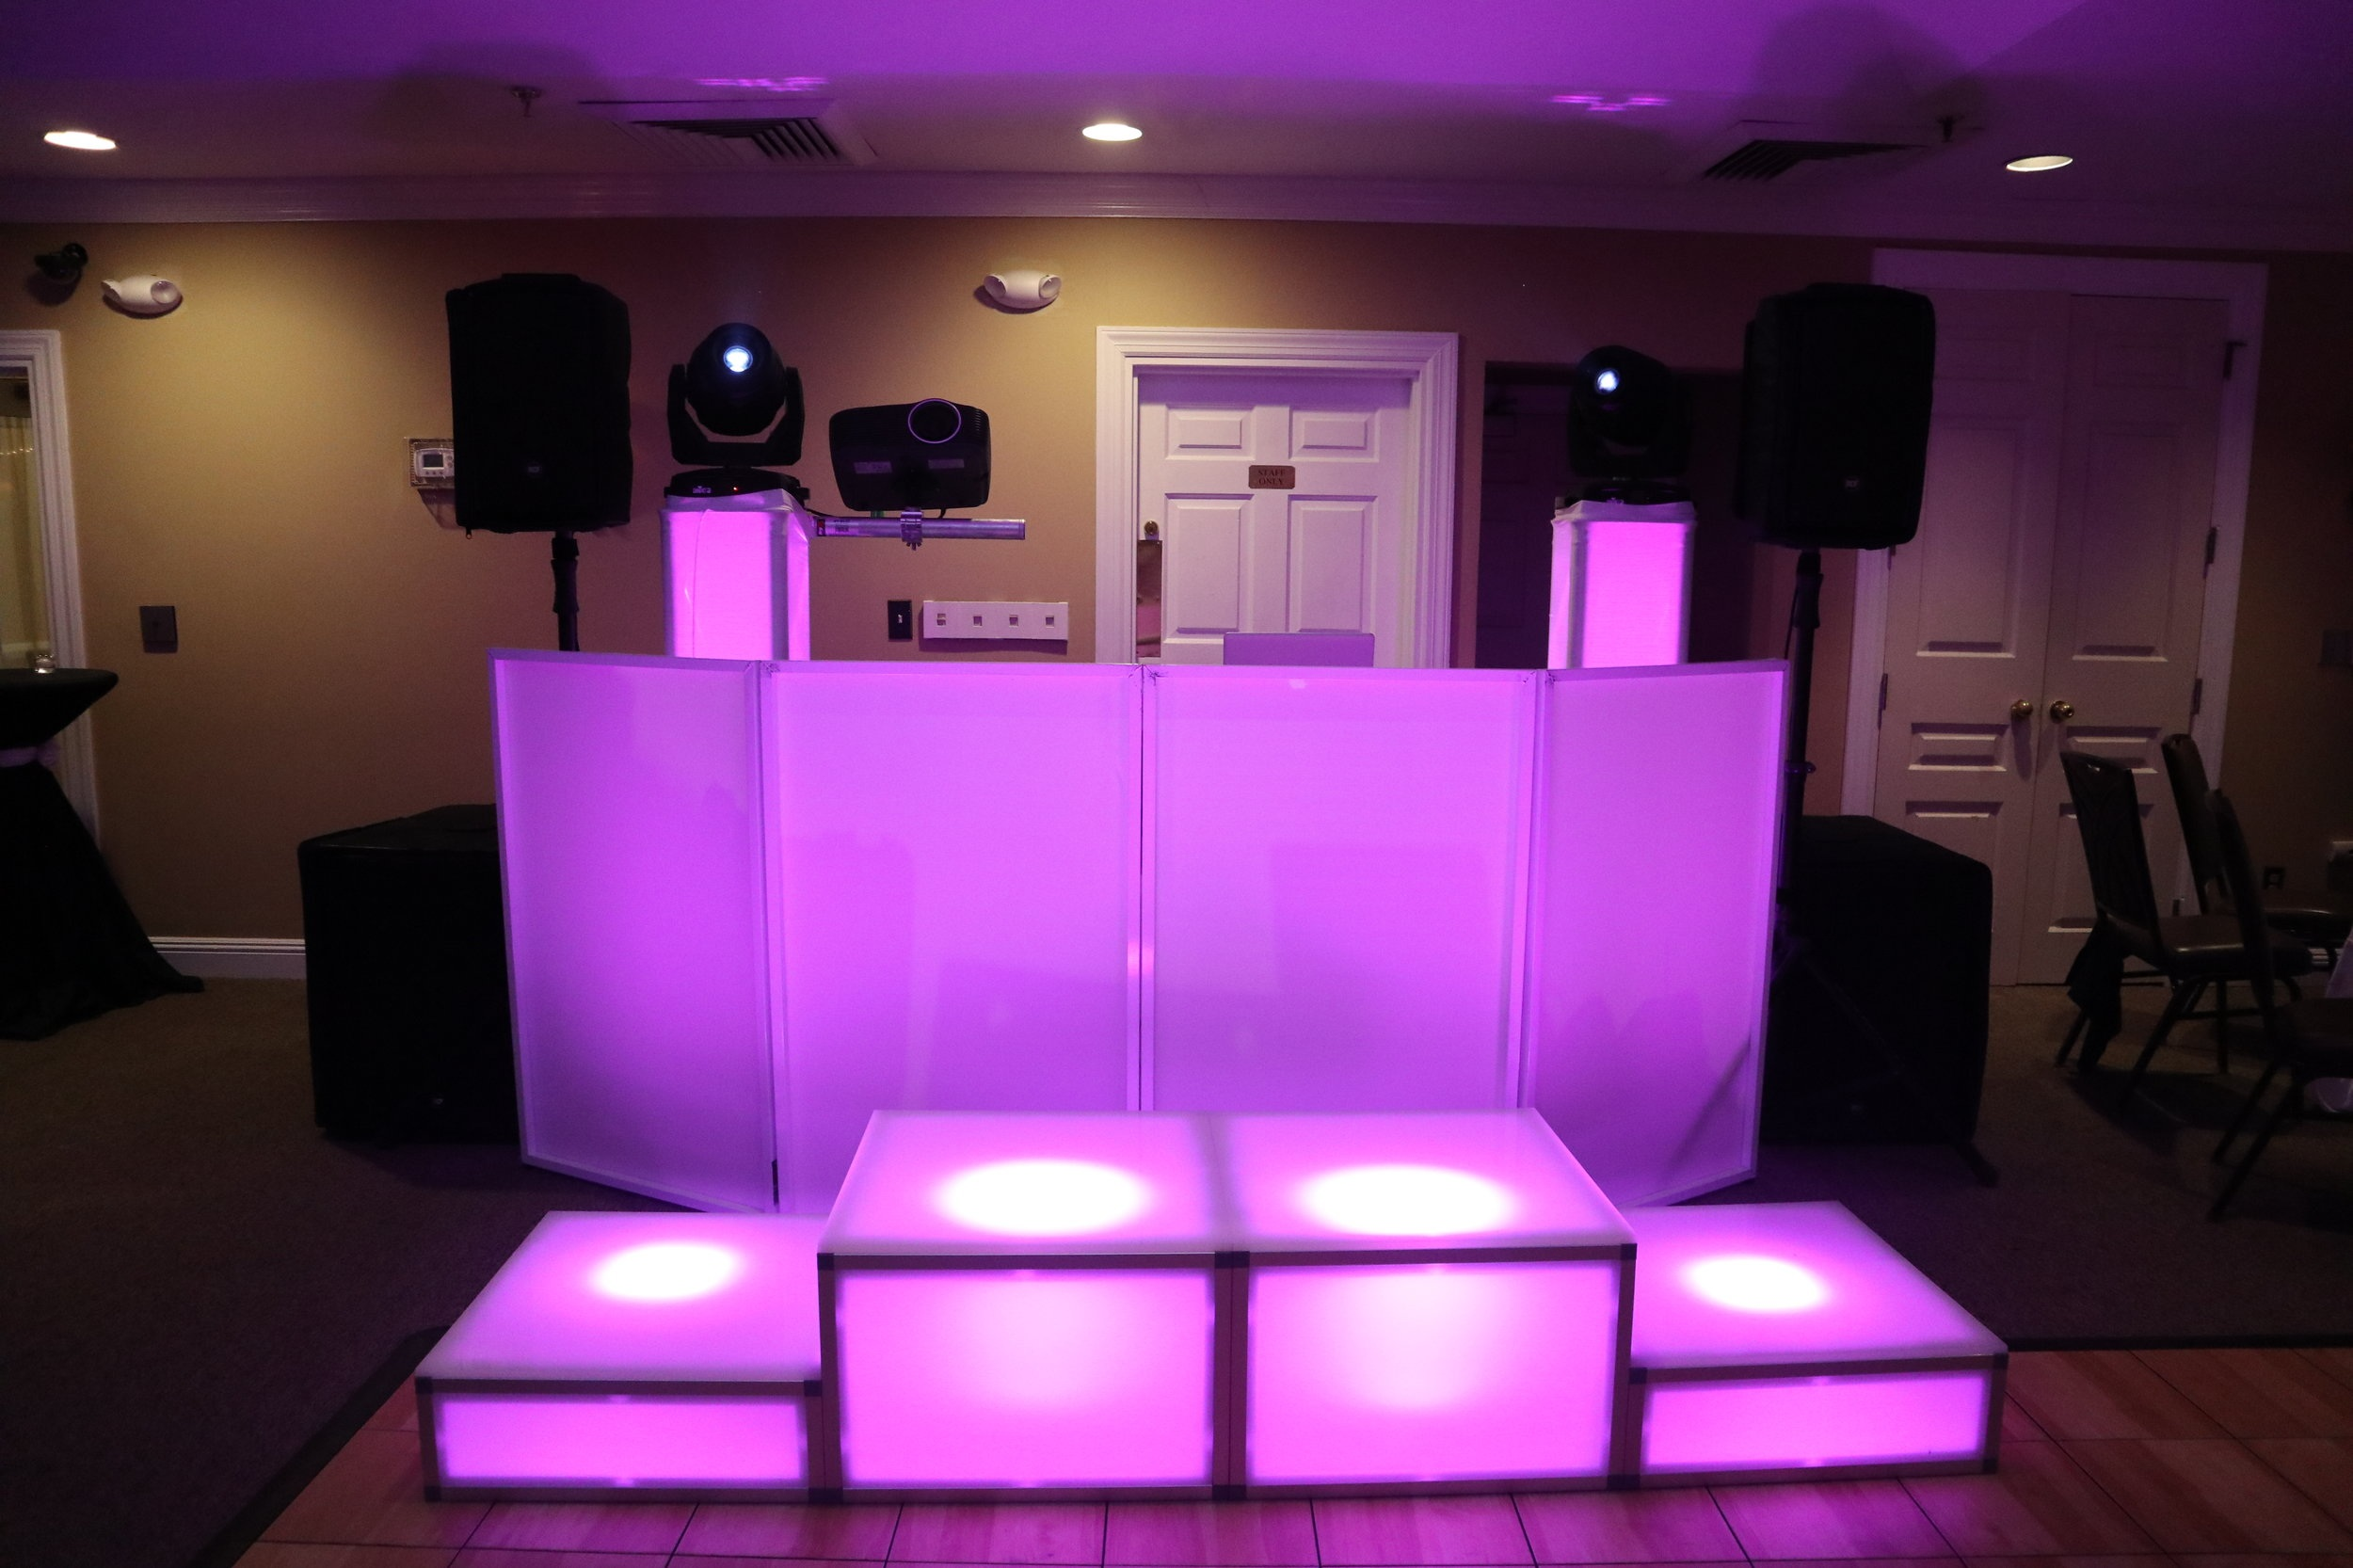 """LED Dance Stages - Priced Per Pair of Blocks,Two Blocks 8"""" High $295Two 8"""" and Two 16"""" $495Four 8"""" and Four 16"""" $795"""